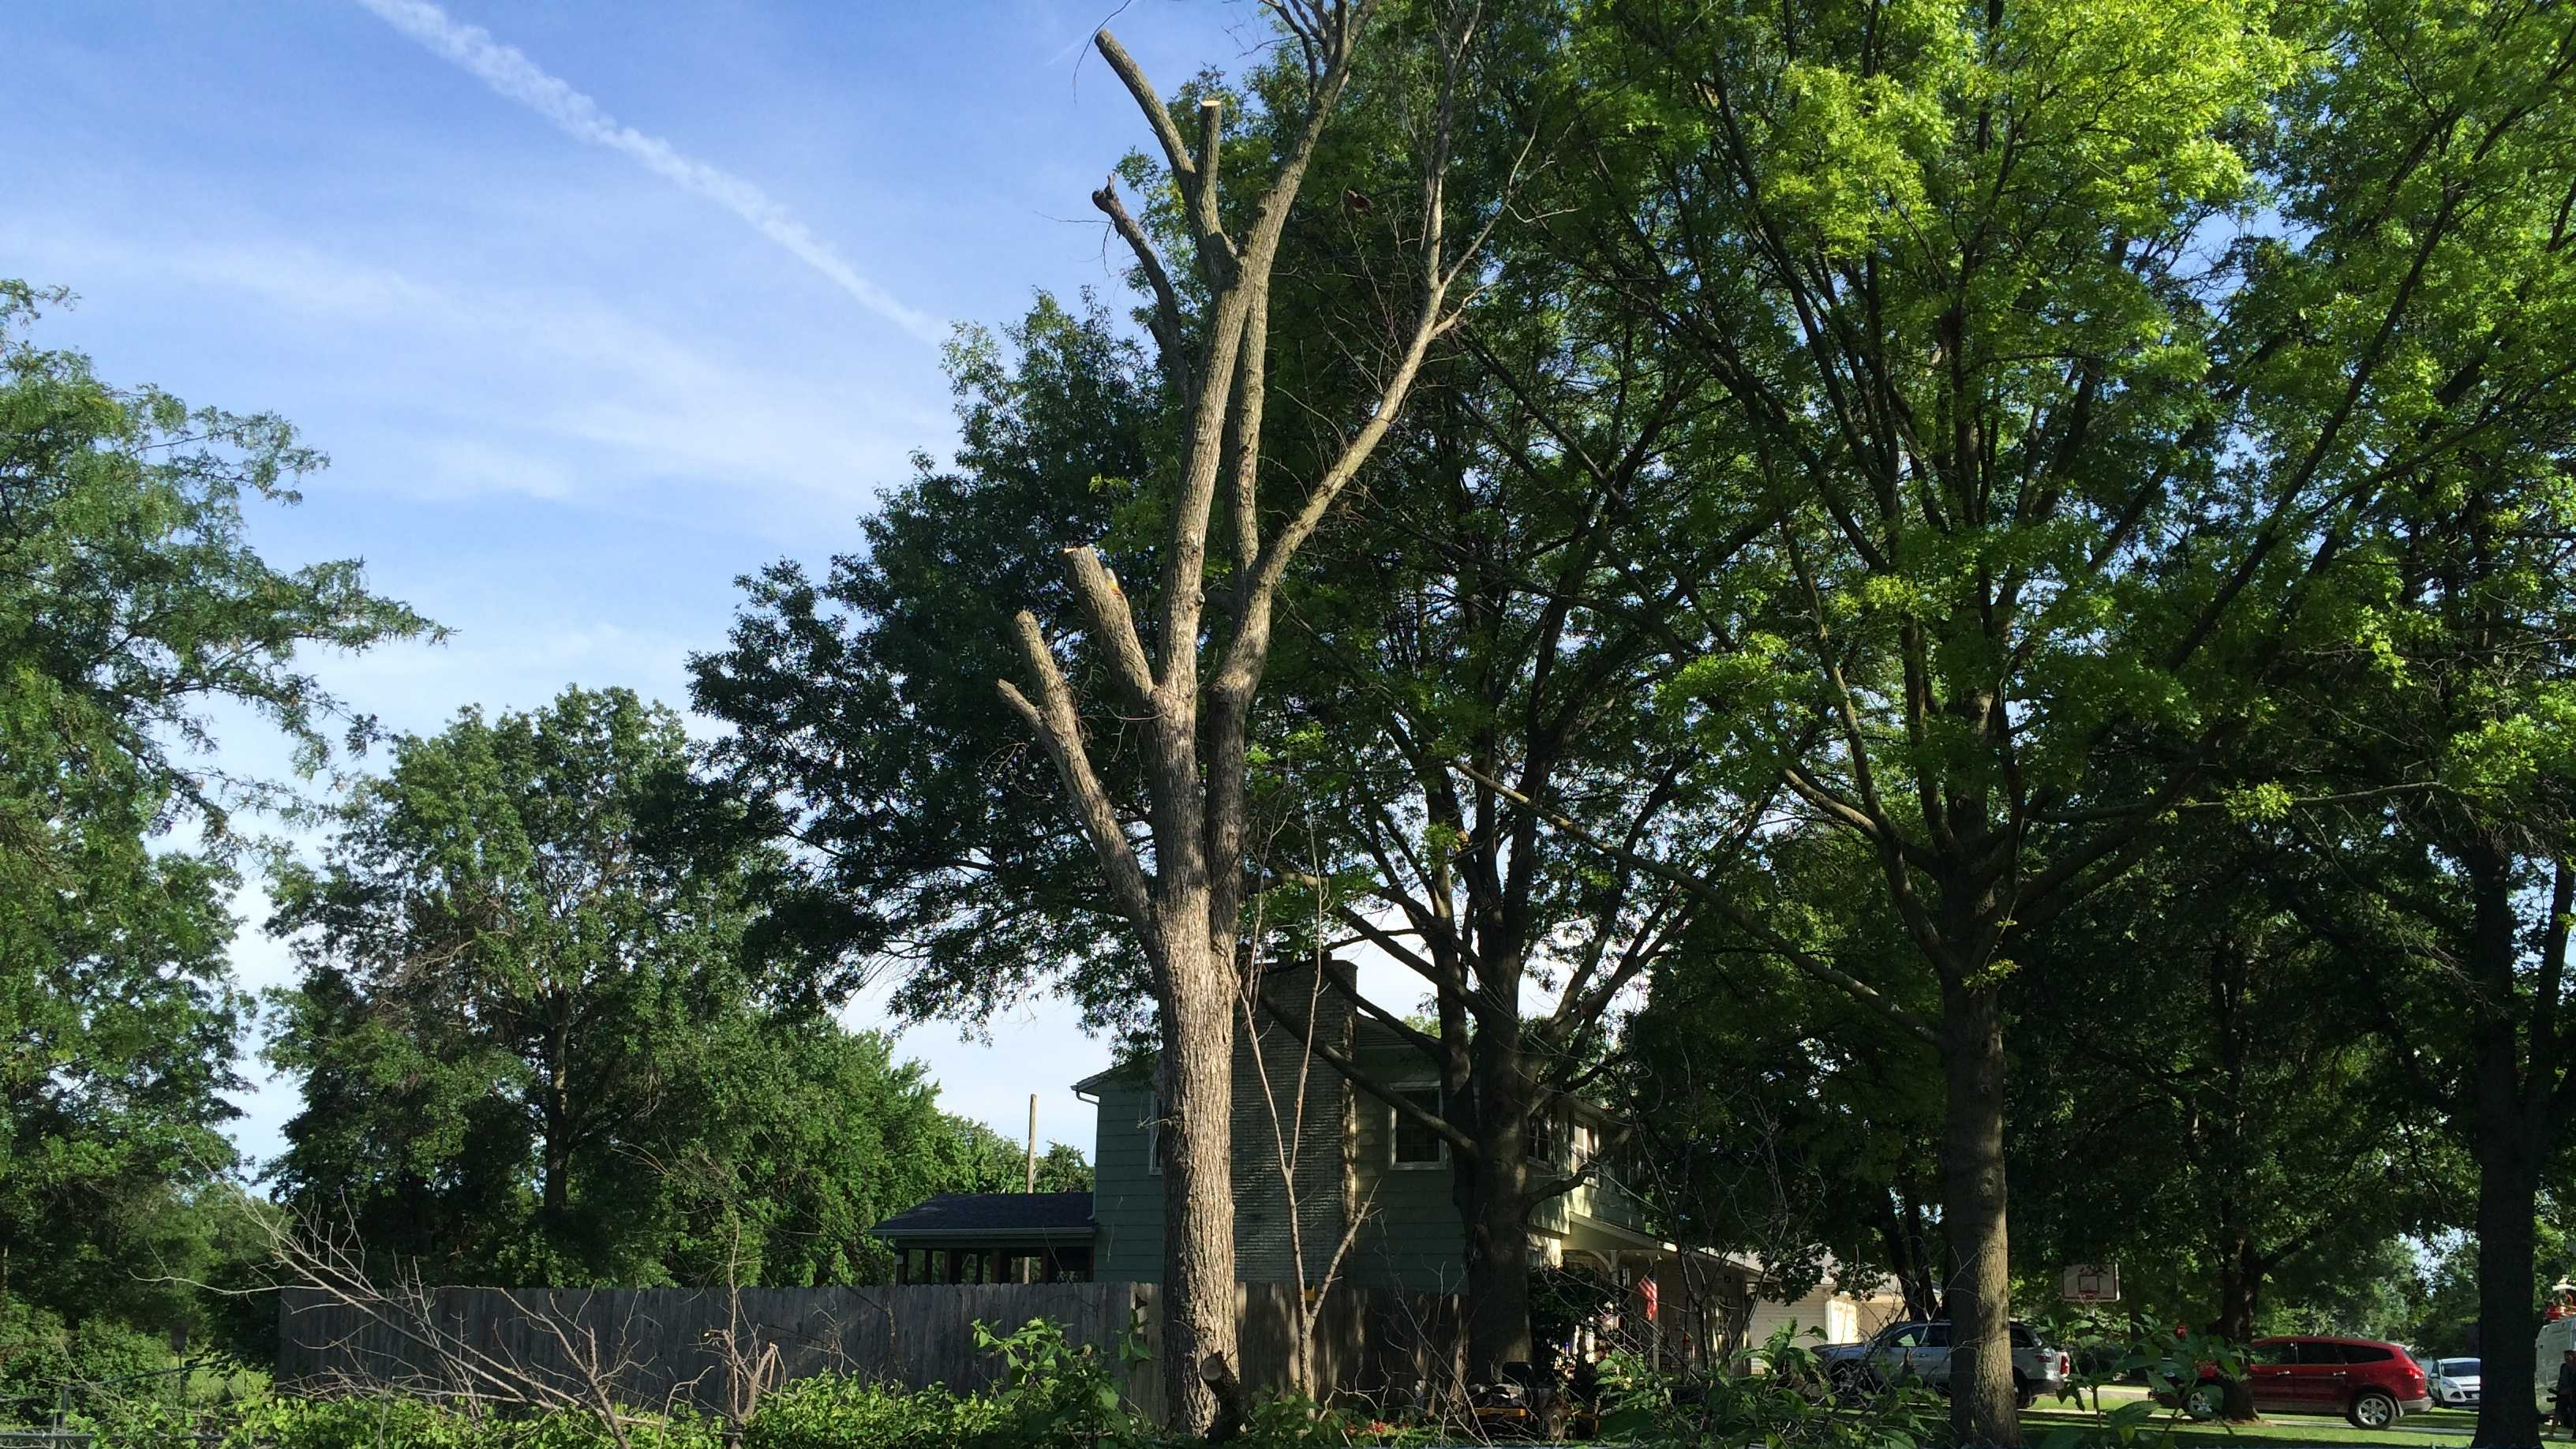 Tree trimmer falls to his death in Gard